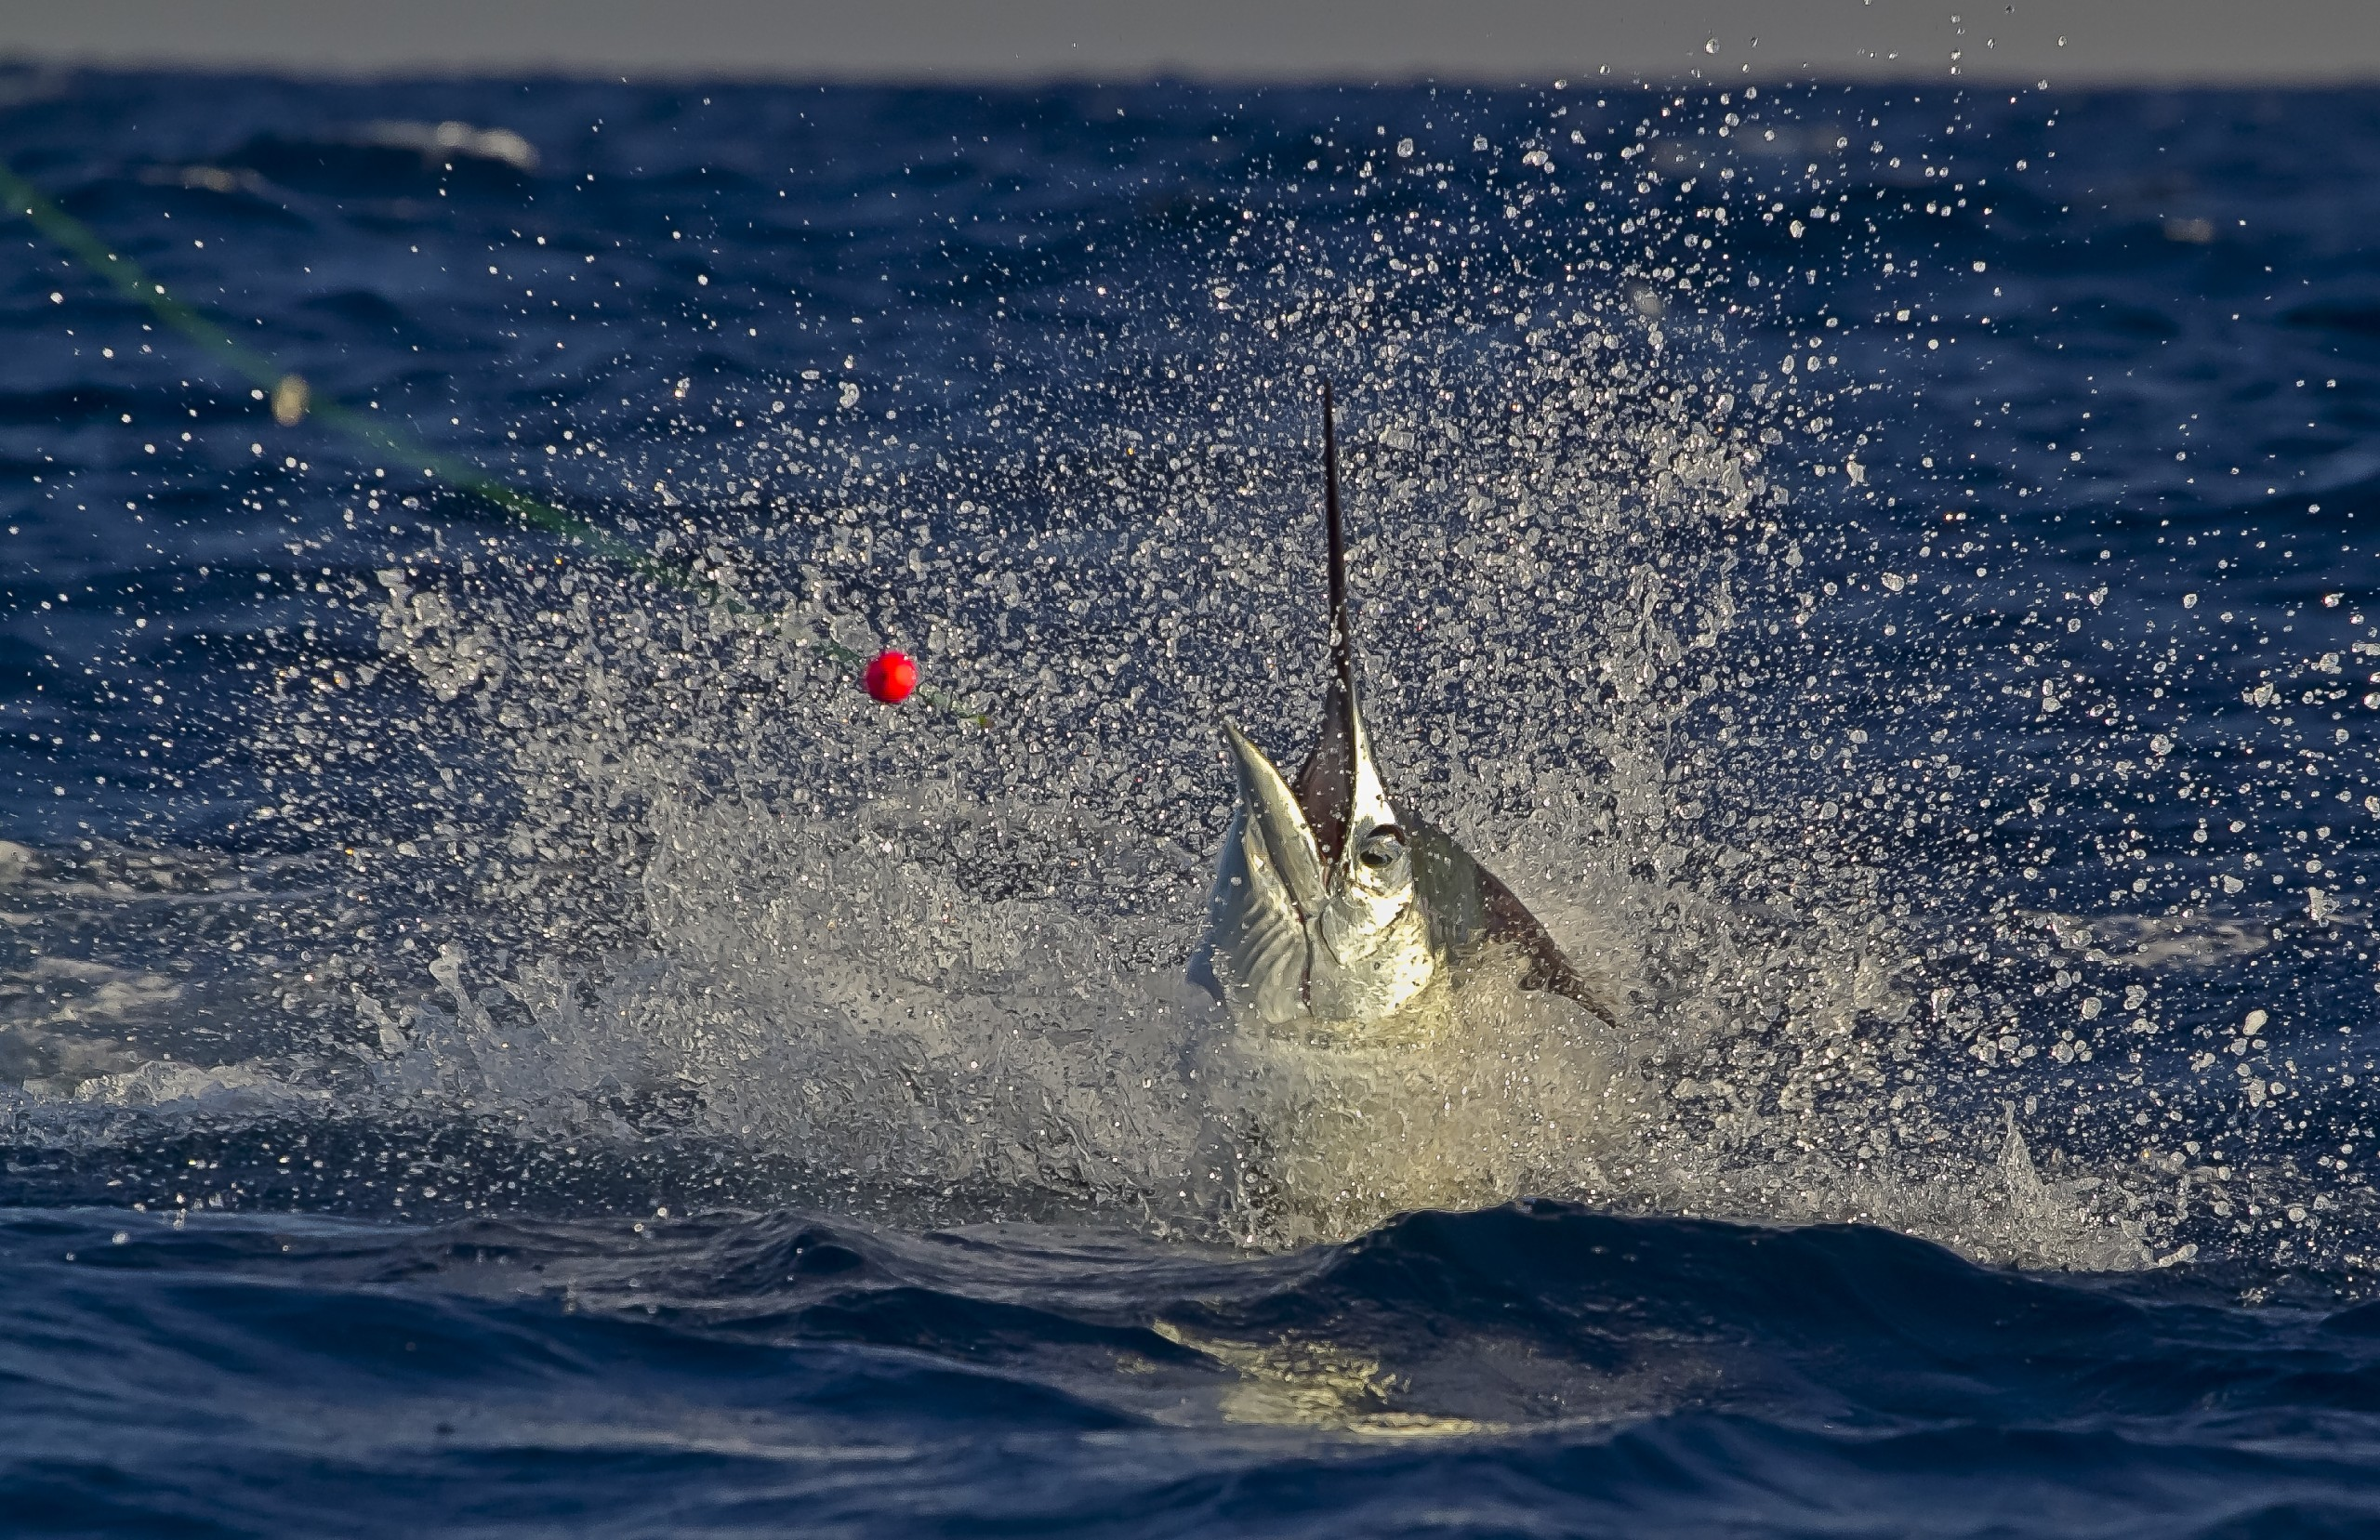 sailfish thrashing around the surface